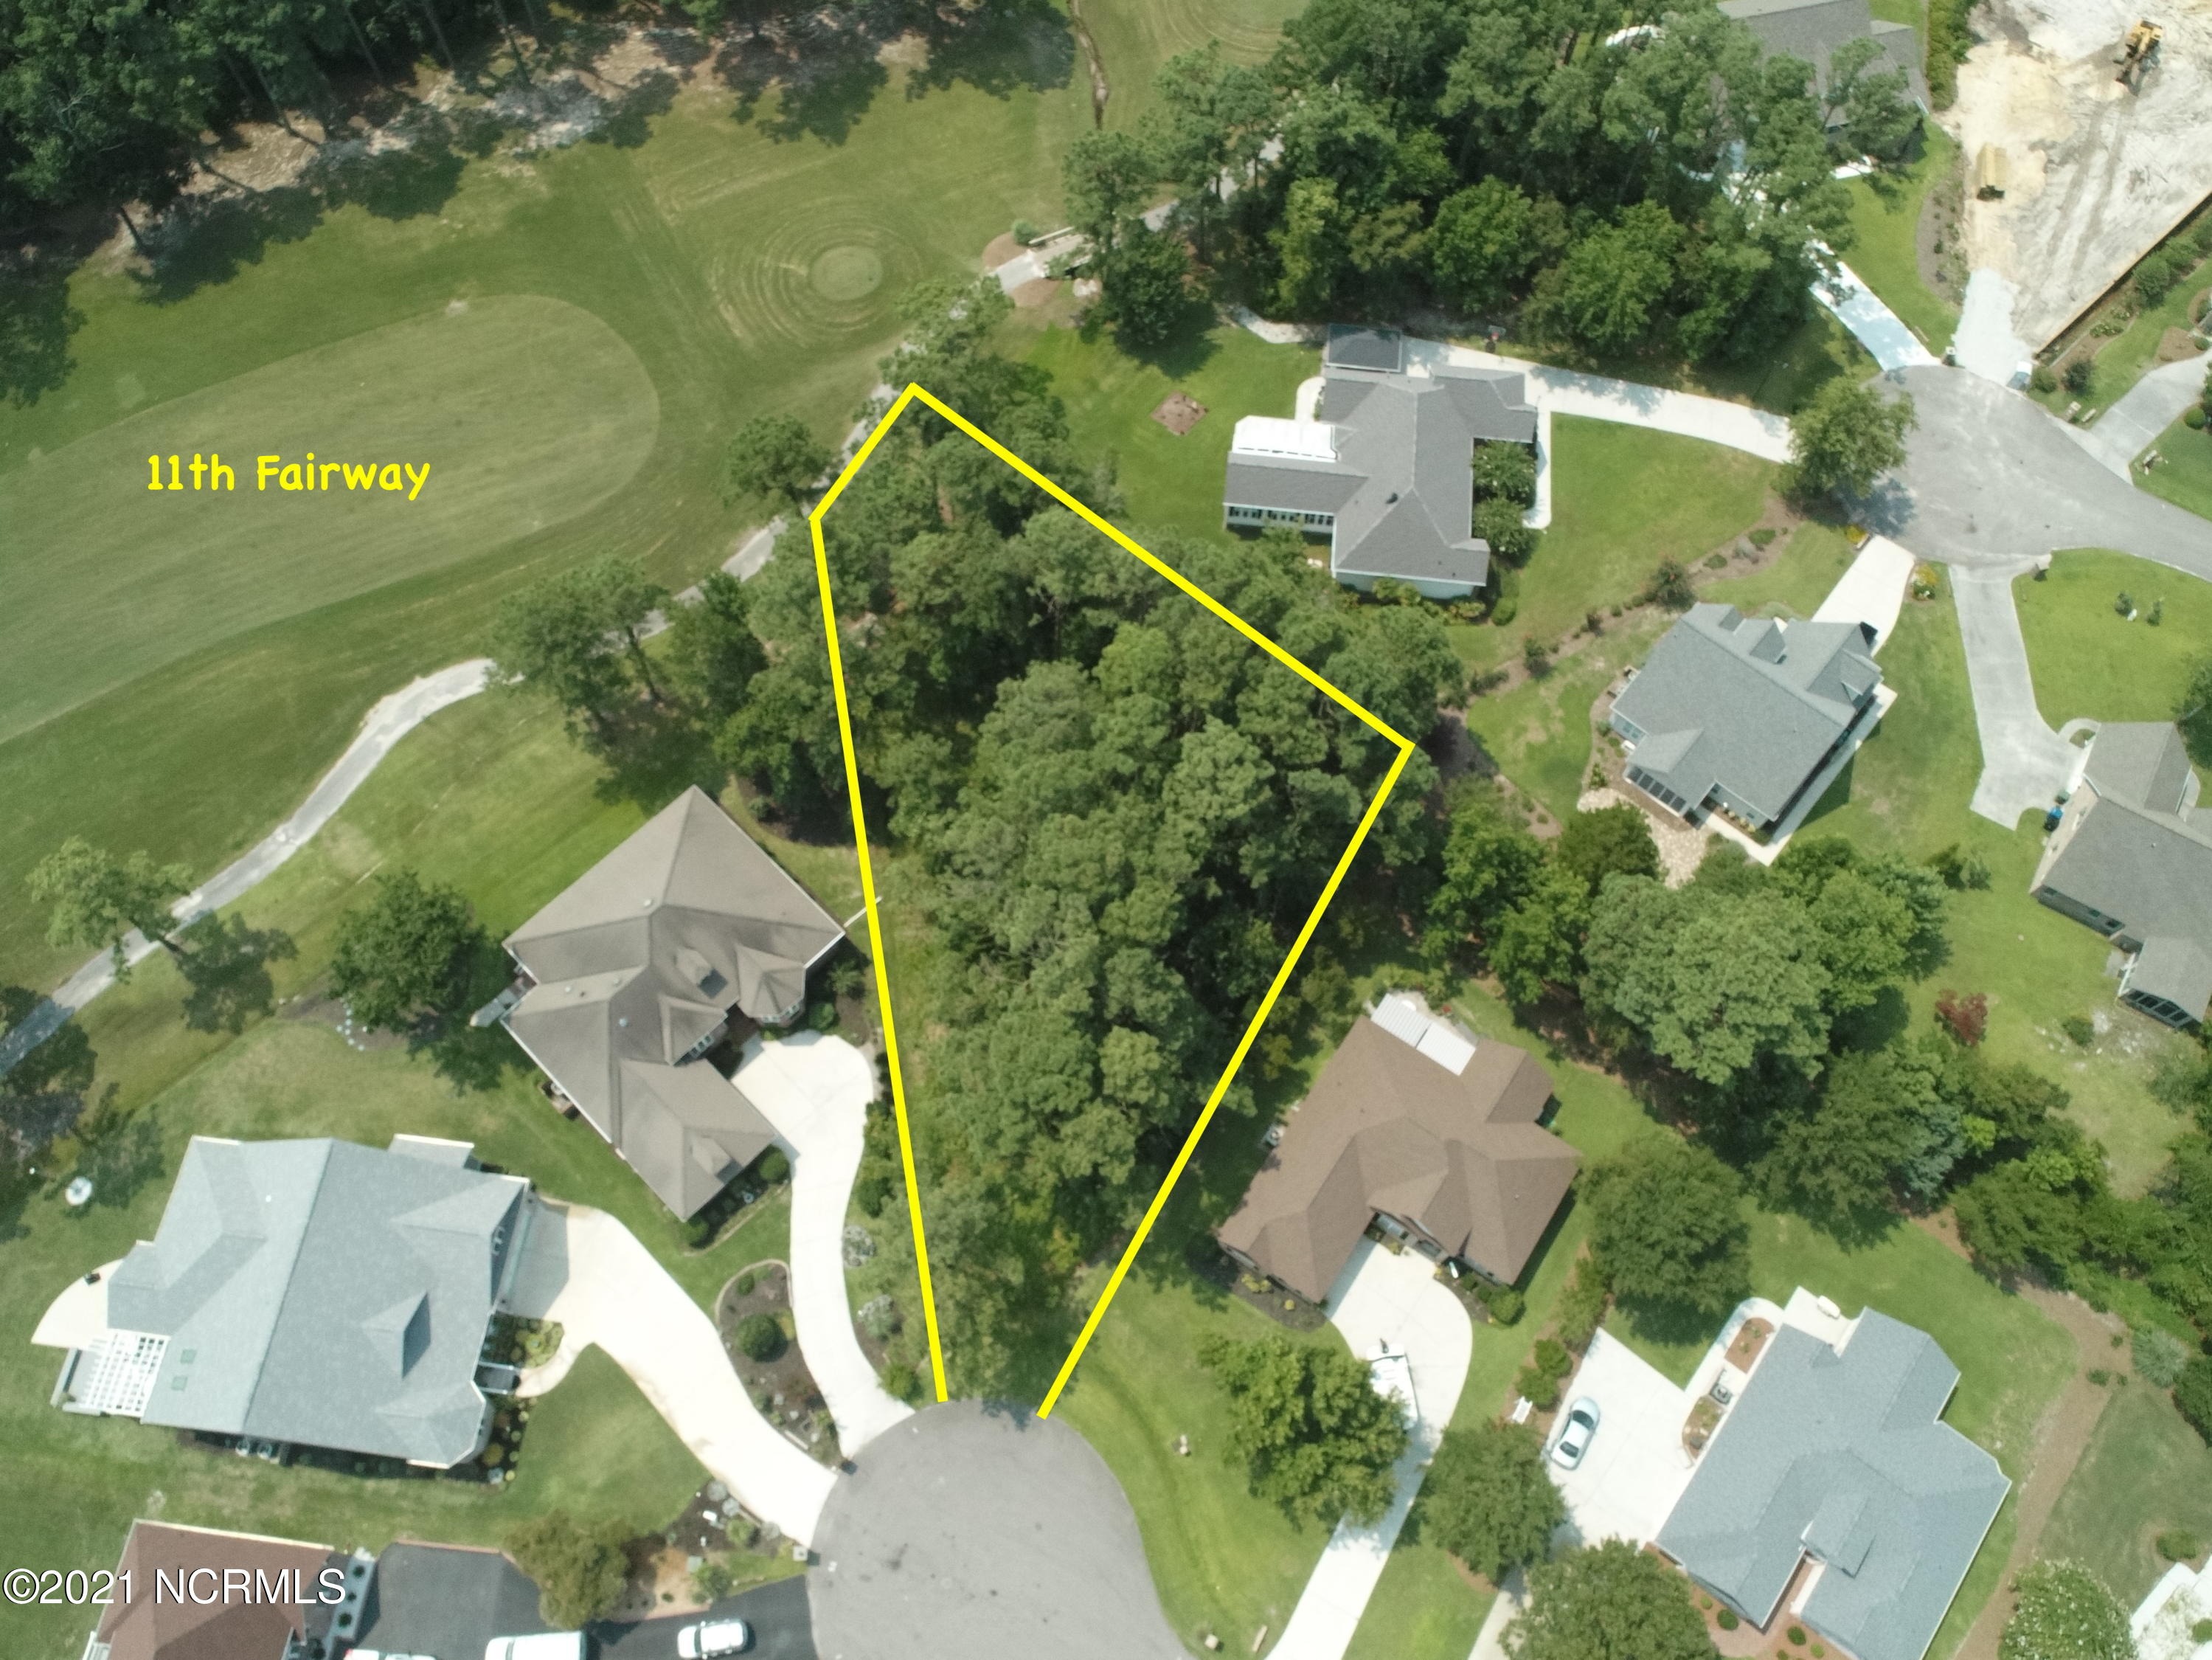 This lot is located in the Golfing community of North Shore Country Club. It's wooded so you can clear as much as you want to build your dream home! Keep in mind you may have water views when you build your house! You are close to the beach, shopping and the MARSOC & Sneads Ferry gates to MCB Camp LeJeune. If the buyer wants to transfer the golf membership buyer will have to pay the $1,500 transfer fees and then pay the monthly fees associated with the golf membership.